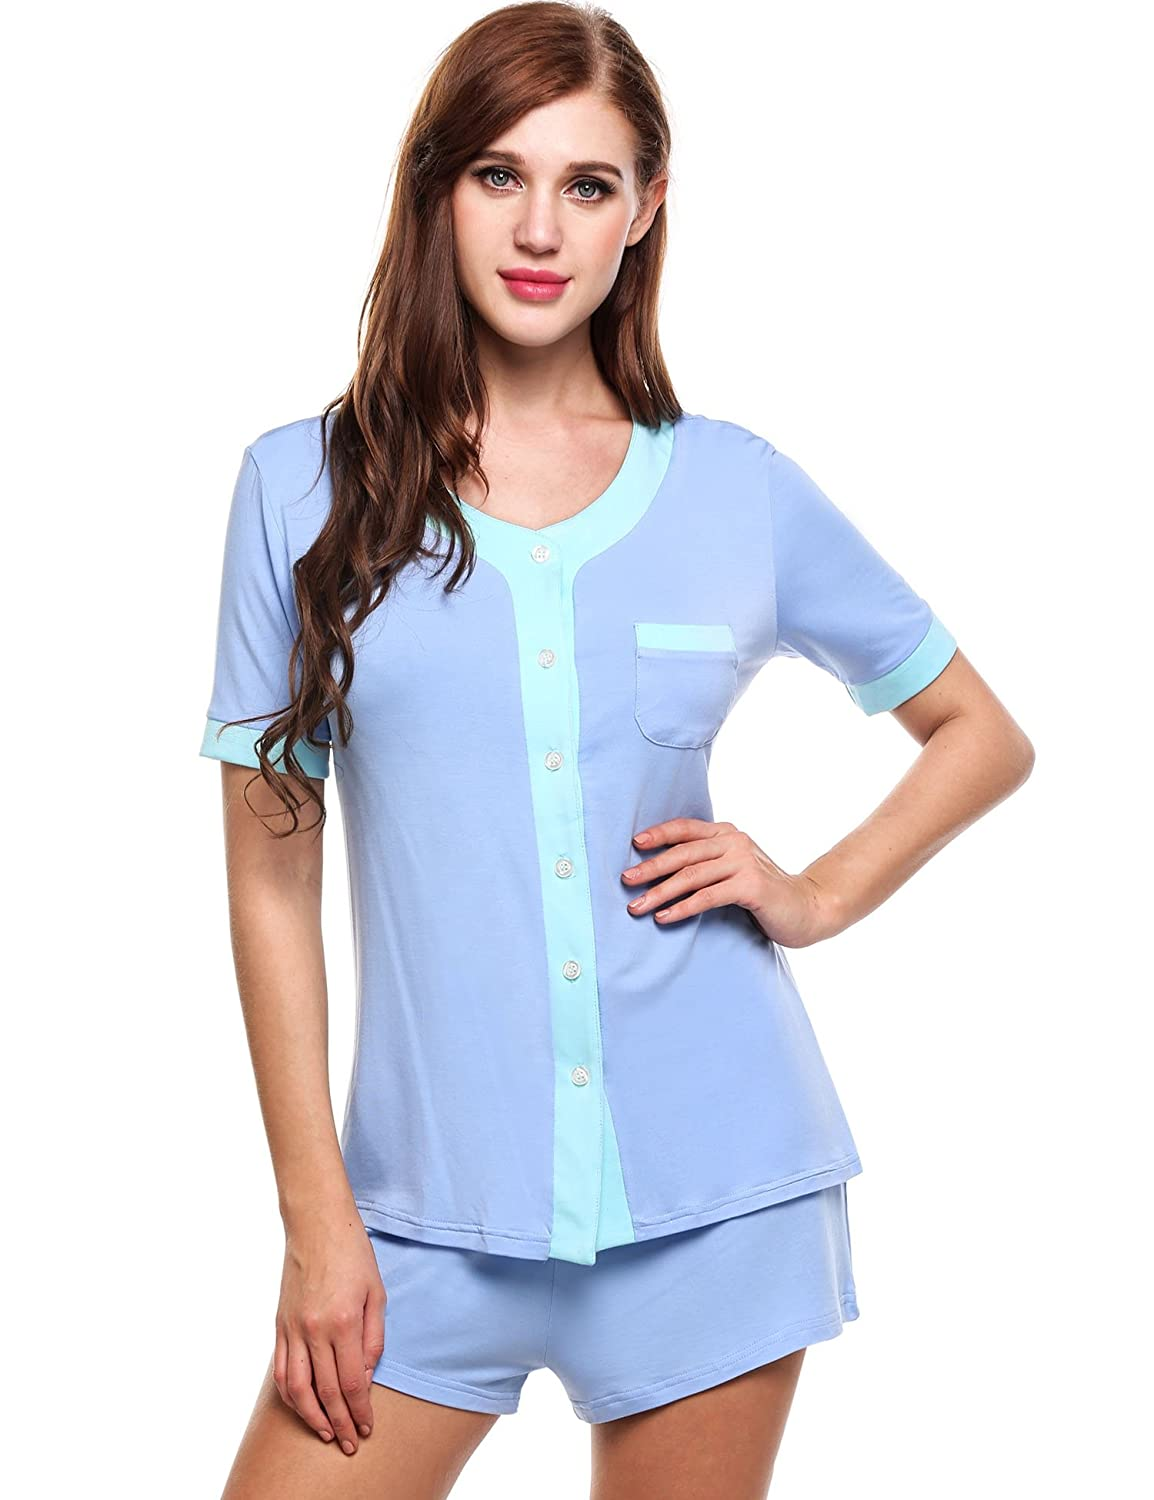 c27181510b Ekouaer Womens Button Pajama Set Comfy Short Sleeve Sleepwear with PJ  Shorts at Amazon Women s Clothing store